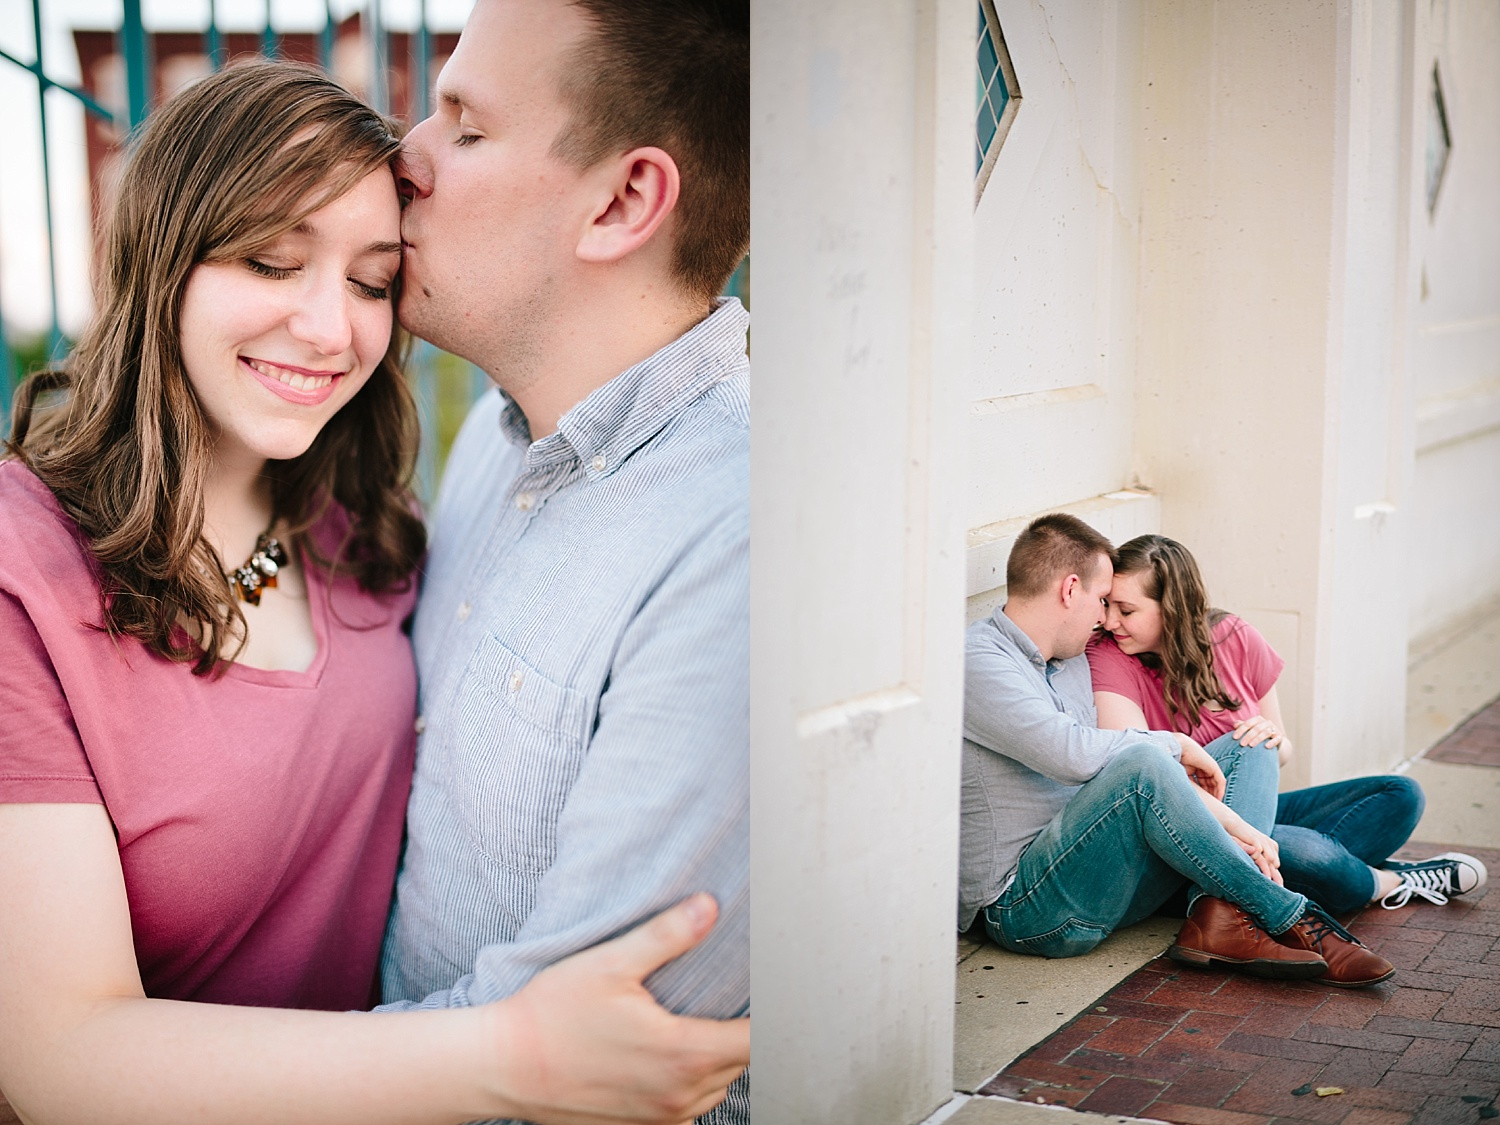 lizandbrandon_oldcity_philadelphia_elfrethsalley_engagement_session_image035.jpg